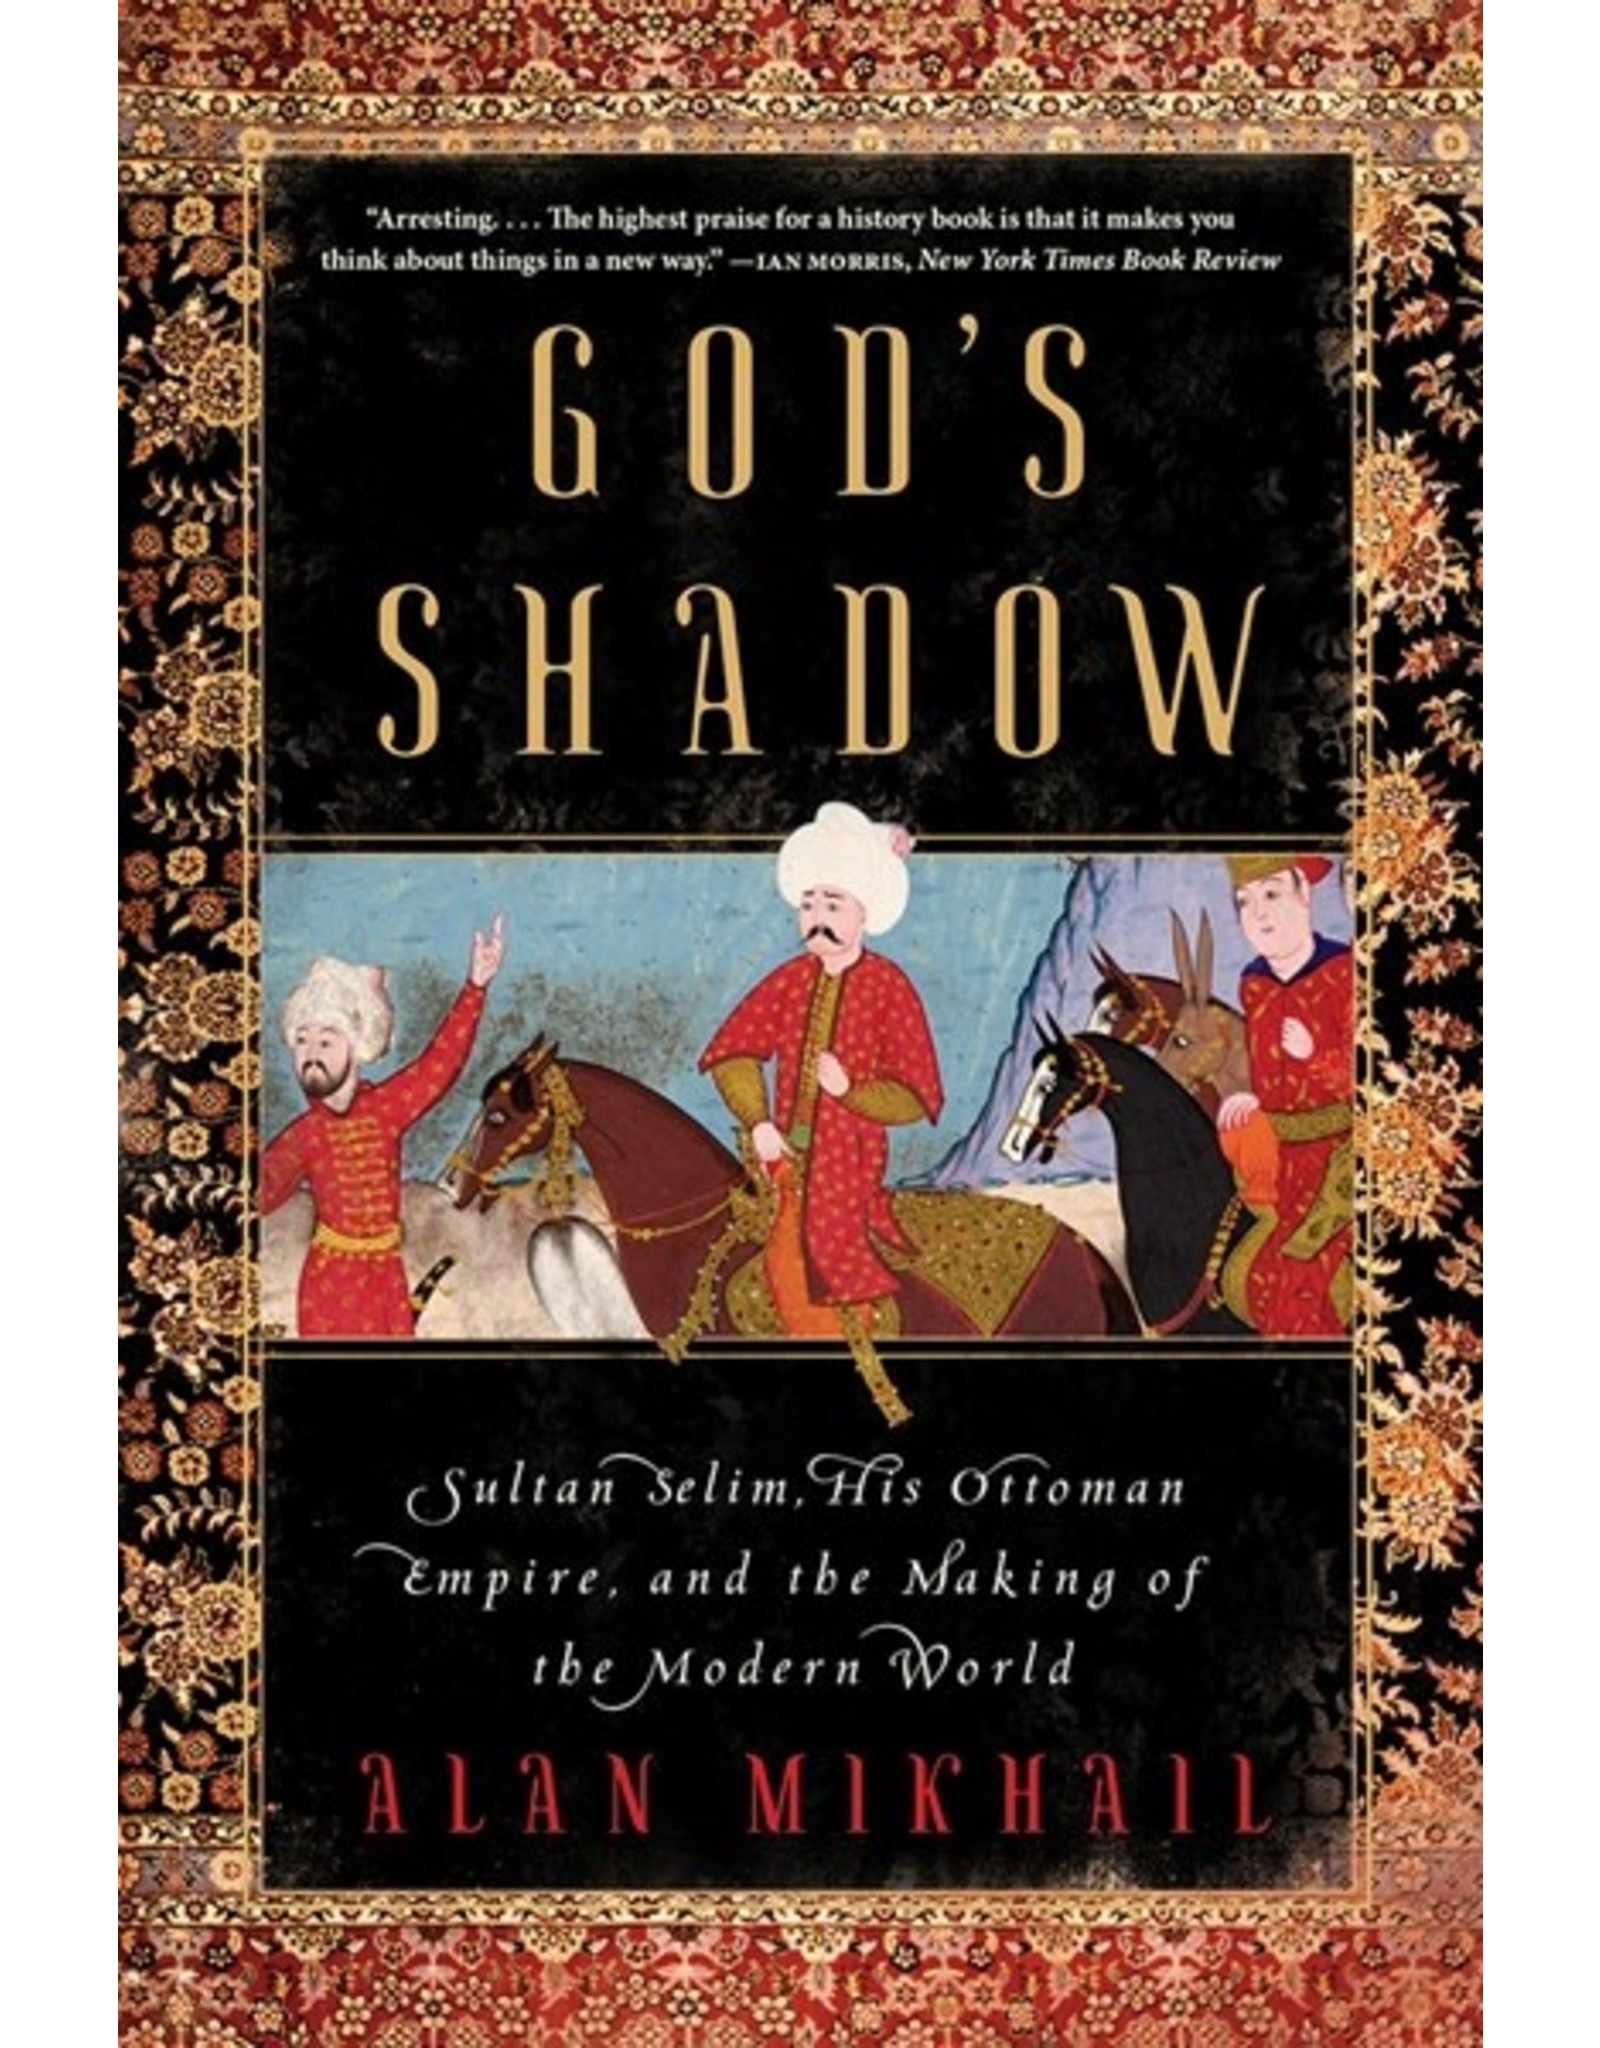 Books God's Shadow: Sultan Selim, His Ottoman Empire, and the Making of the Modern World by Alan Mikhail